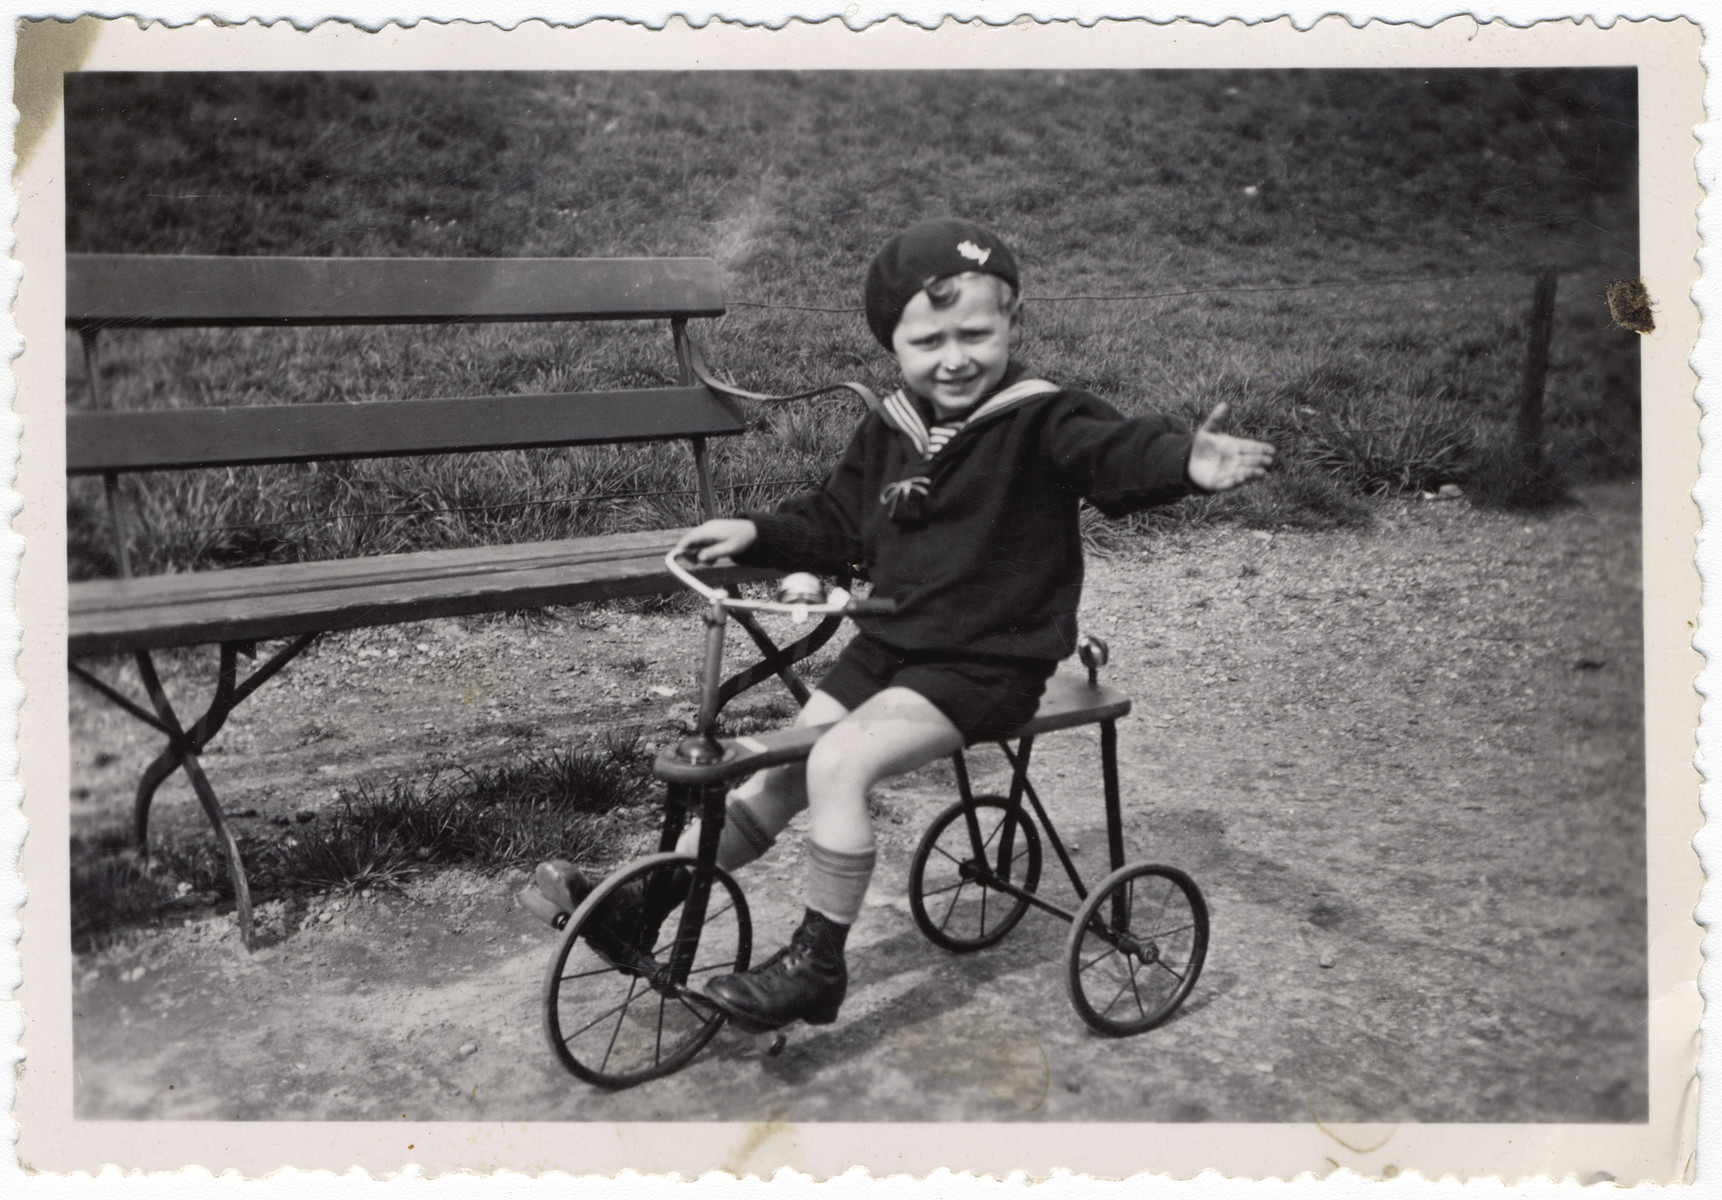 Richard Weilheimer rides his tricycle on a path in a park.